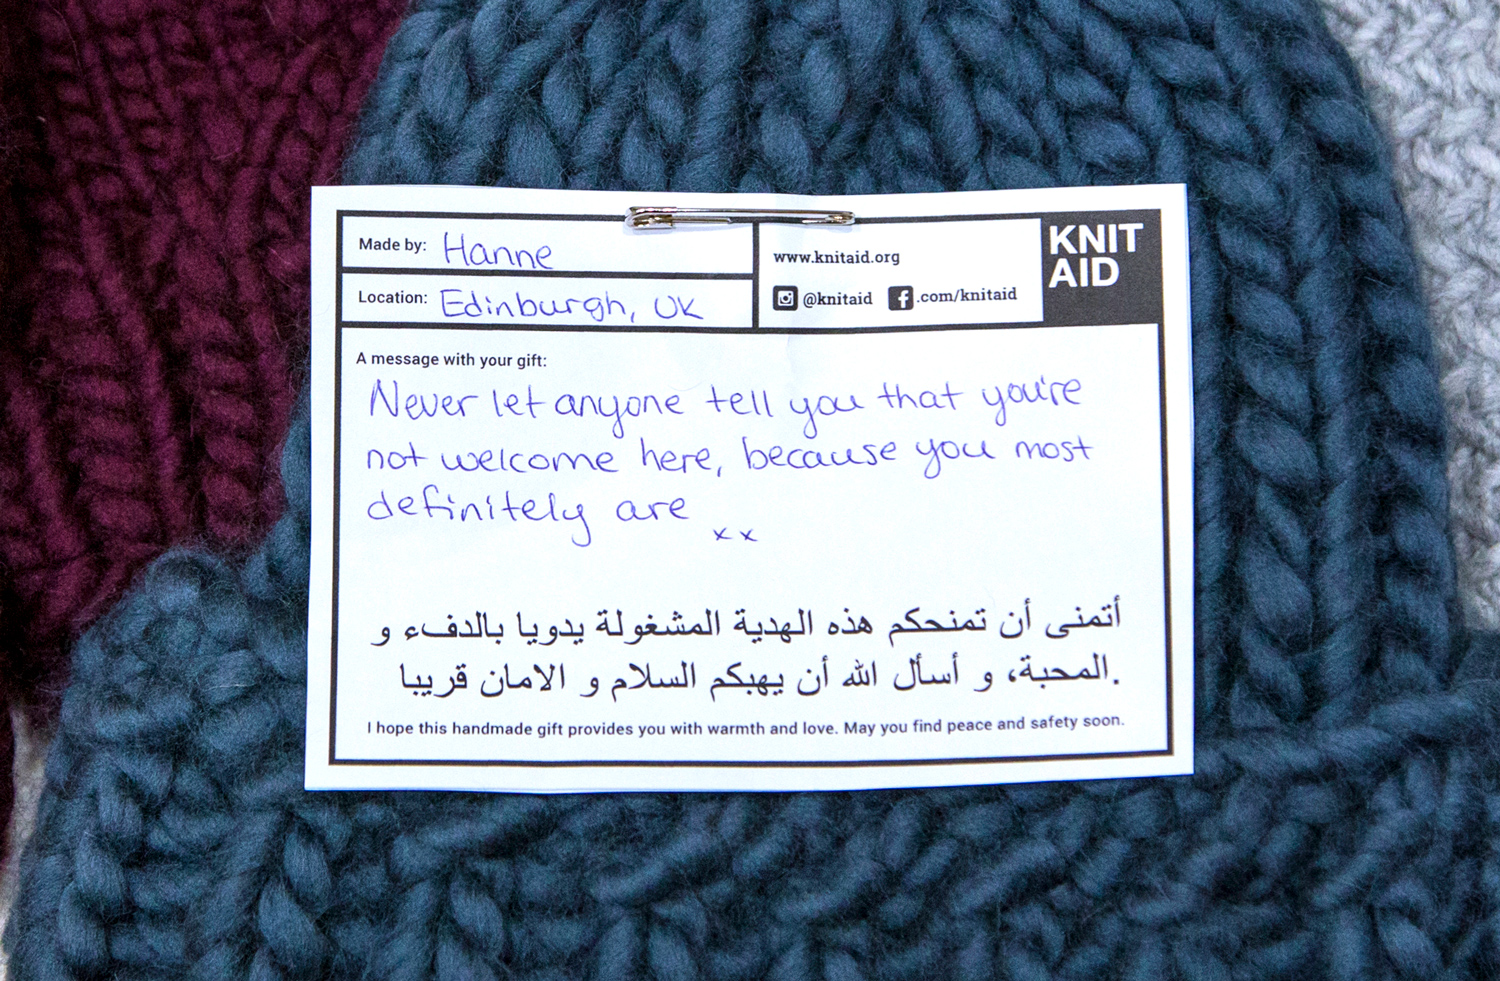 knitaid_message.jpg